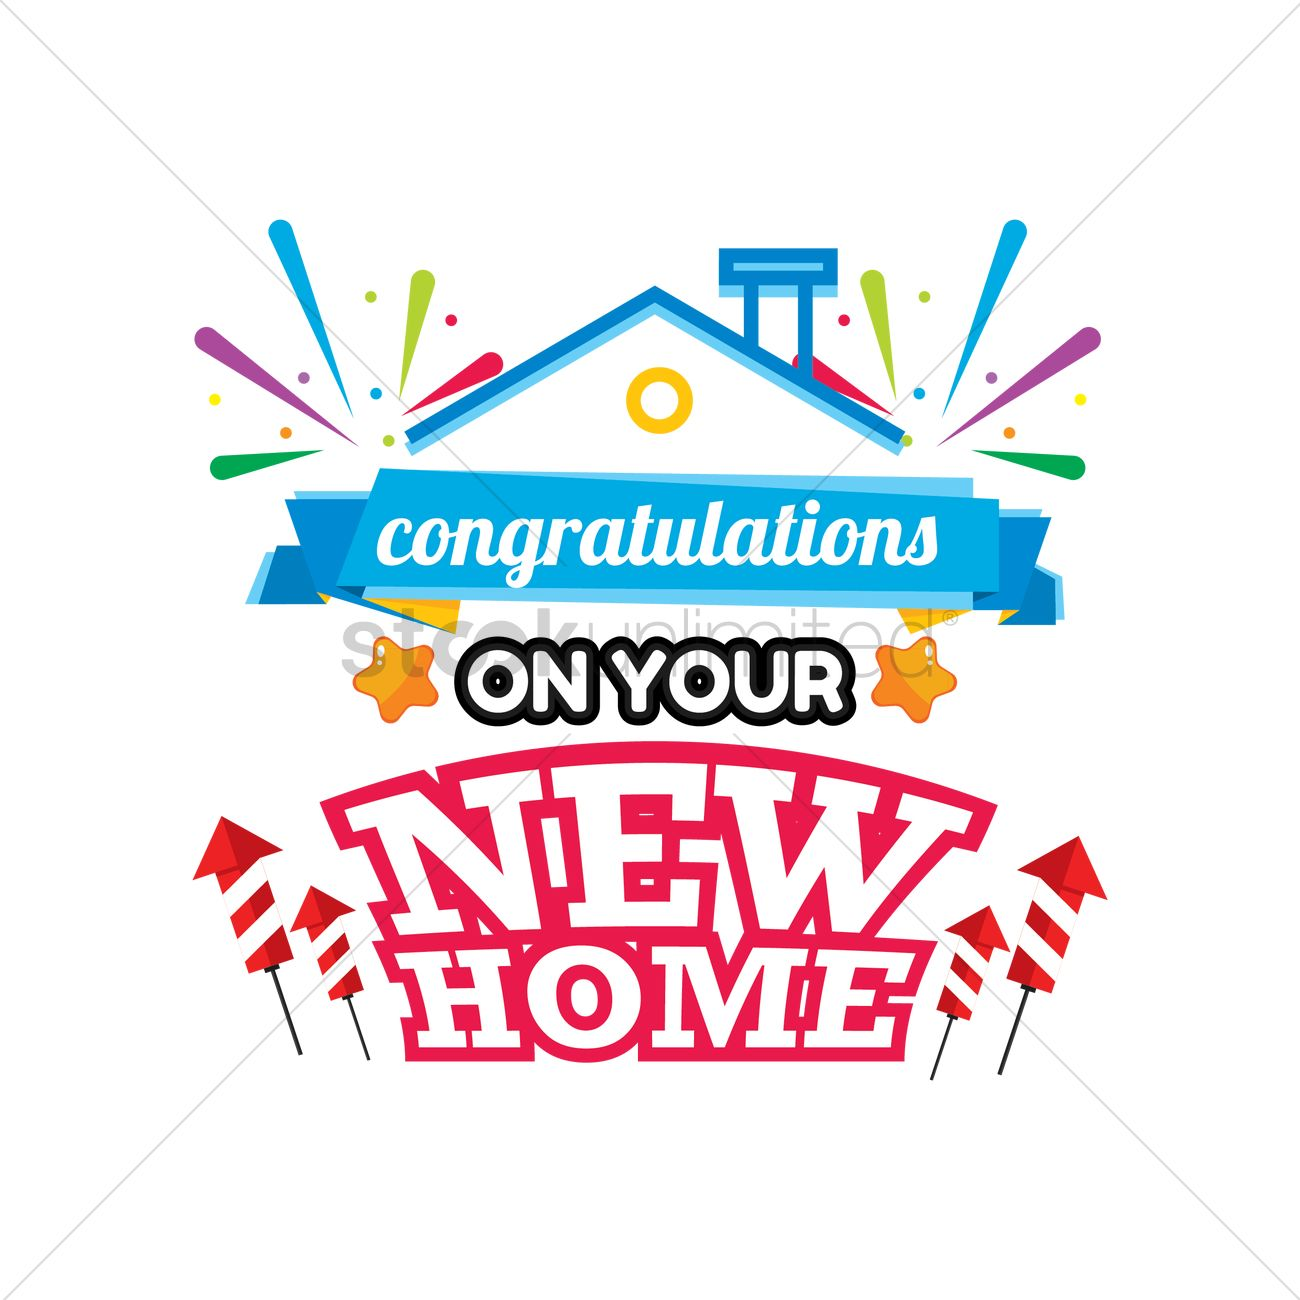 Congratulations on your new home label vector image for Build your new home